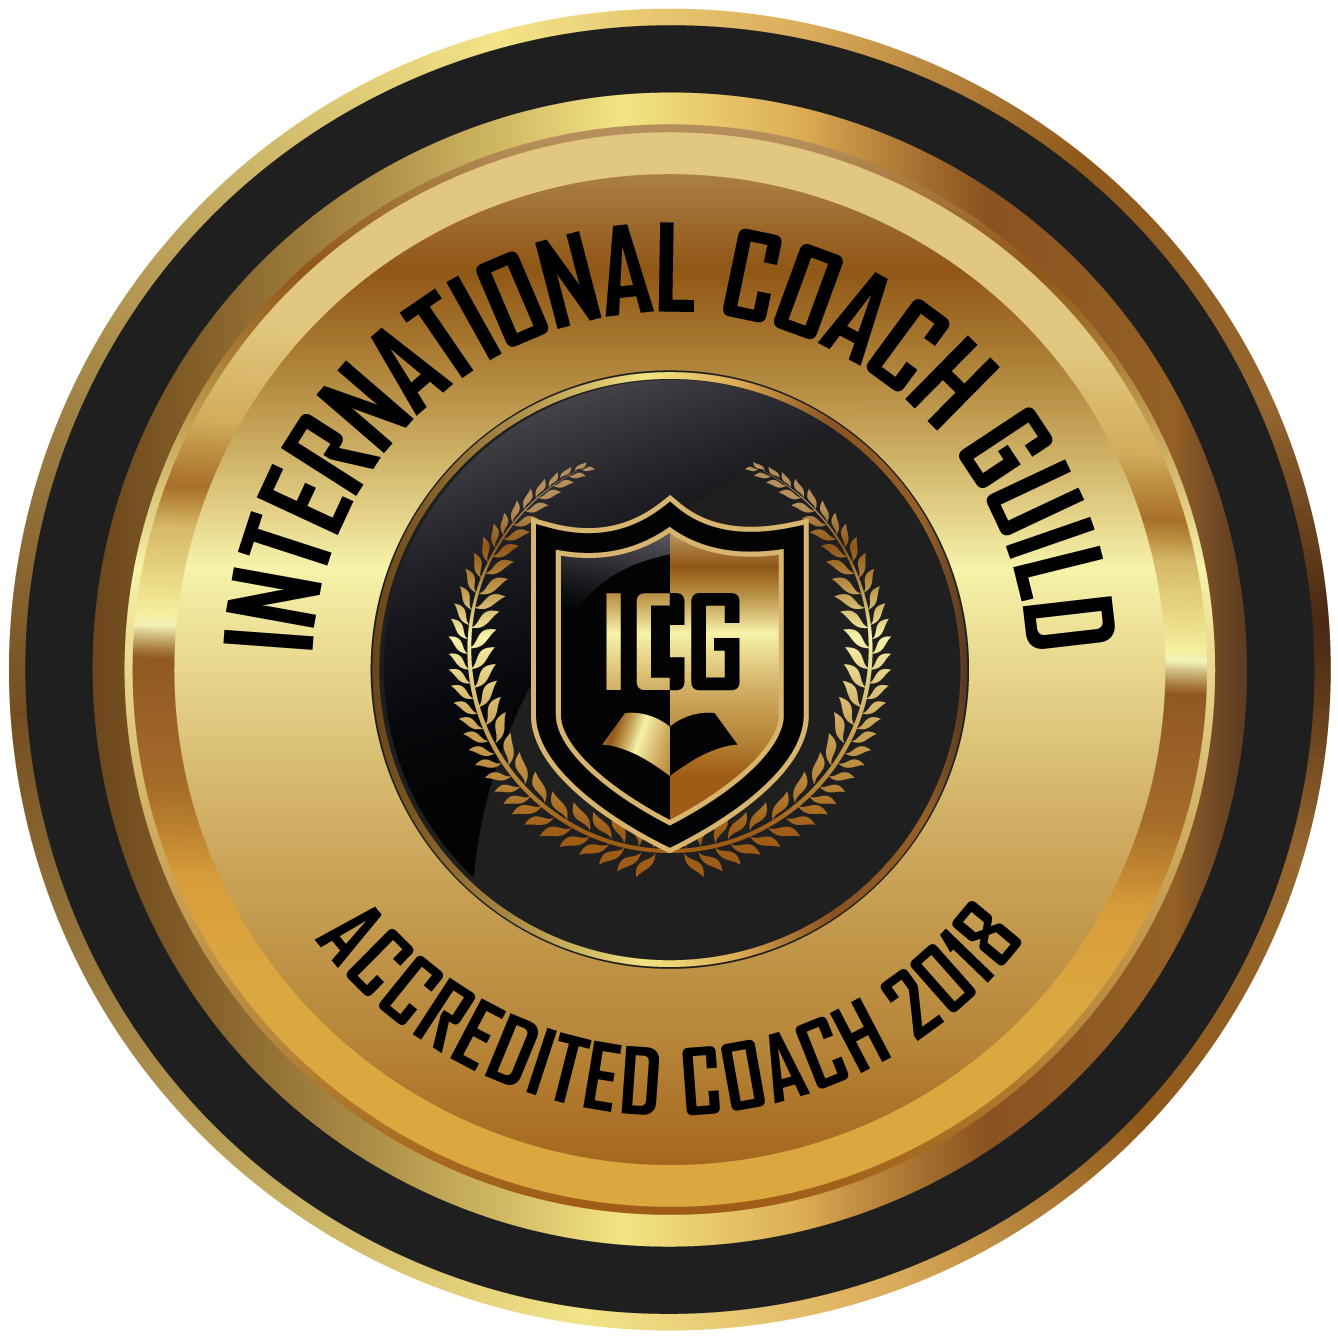 ICG Accredited Coach 2018 Members Badge High Resolution